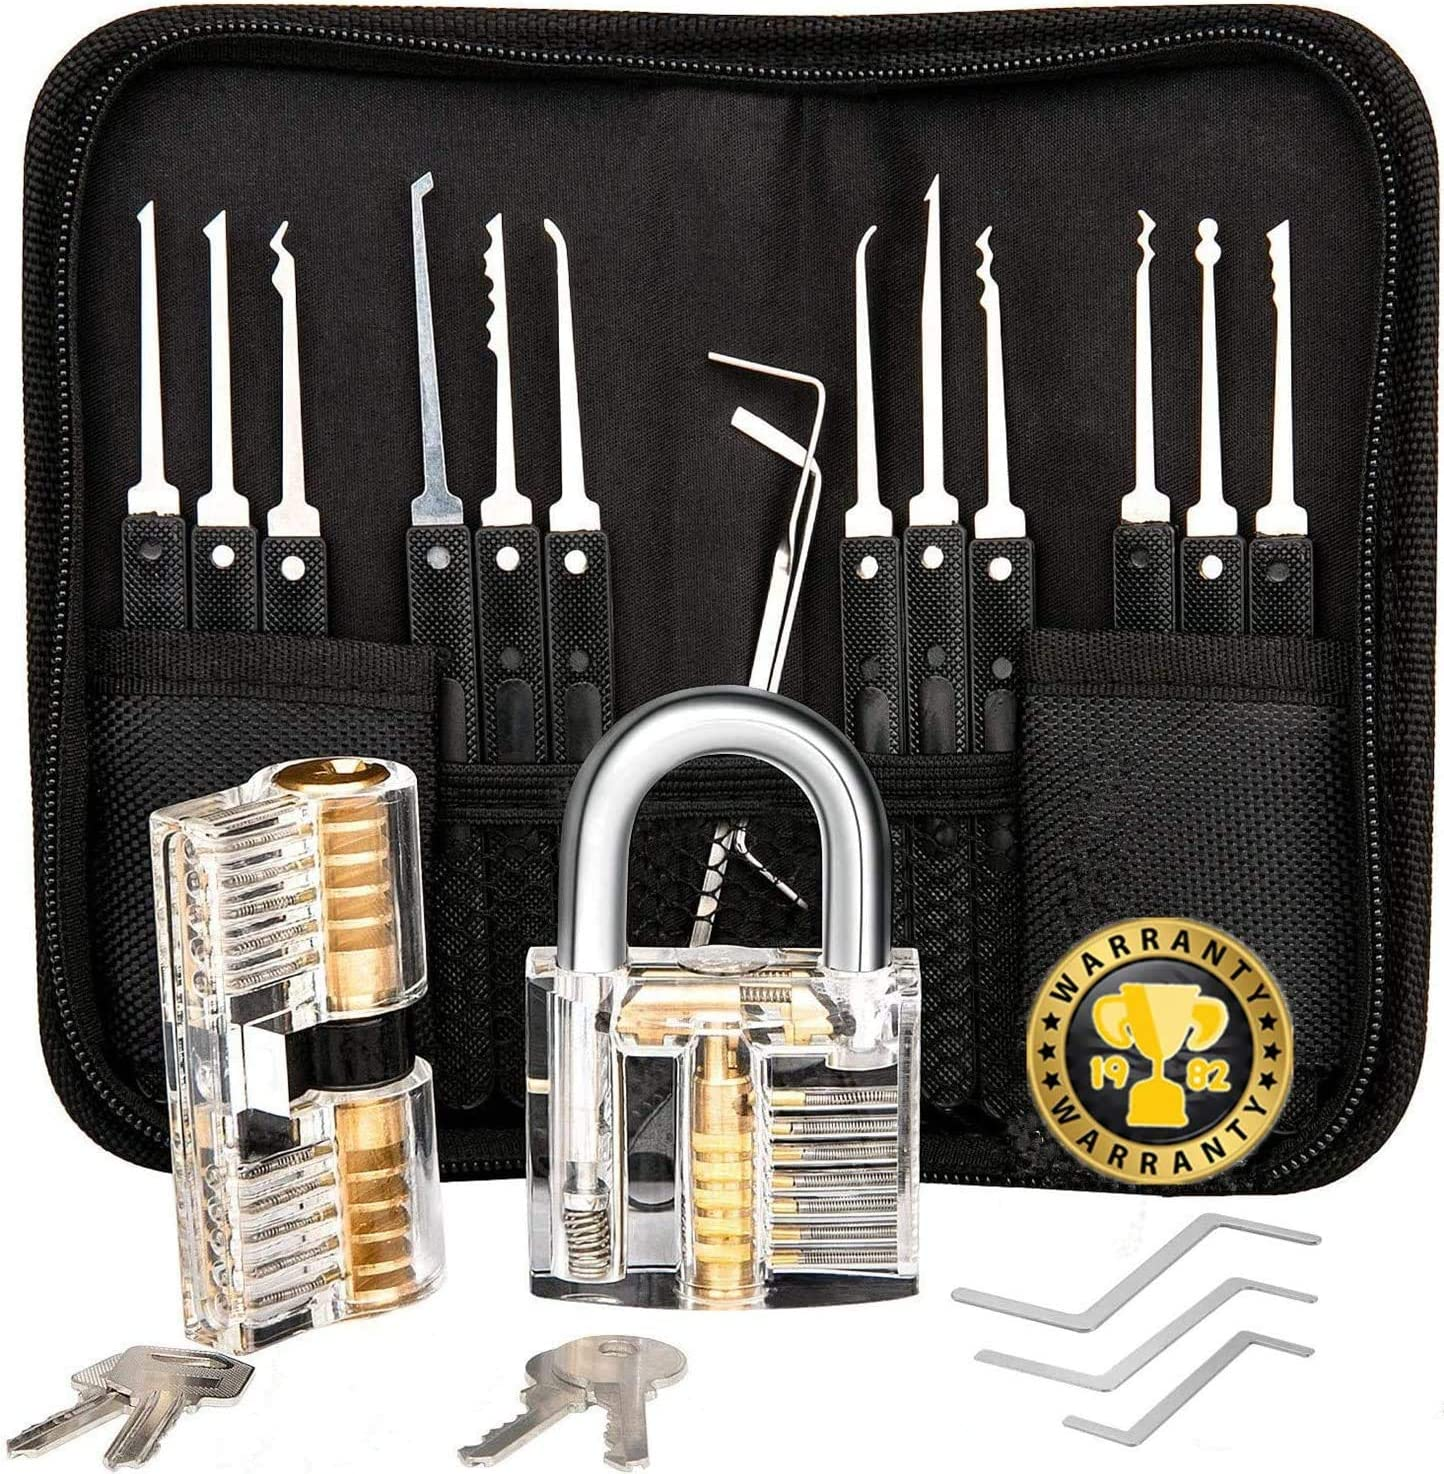 Multi-Function Tool Set-Stainless Steel, Specially Designed Training kit, Professional 17 PCS, with 3 Locks (Black)